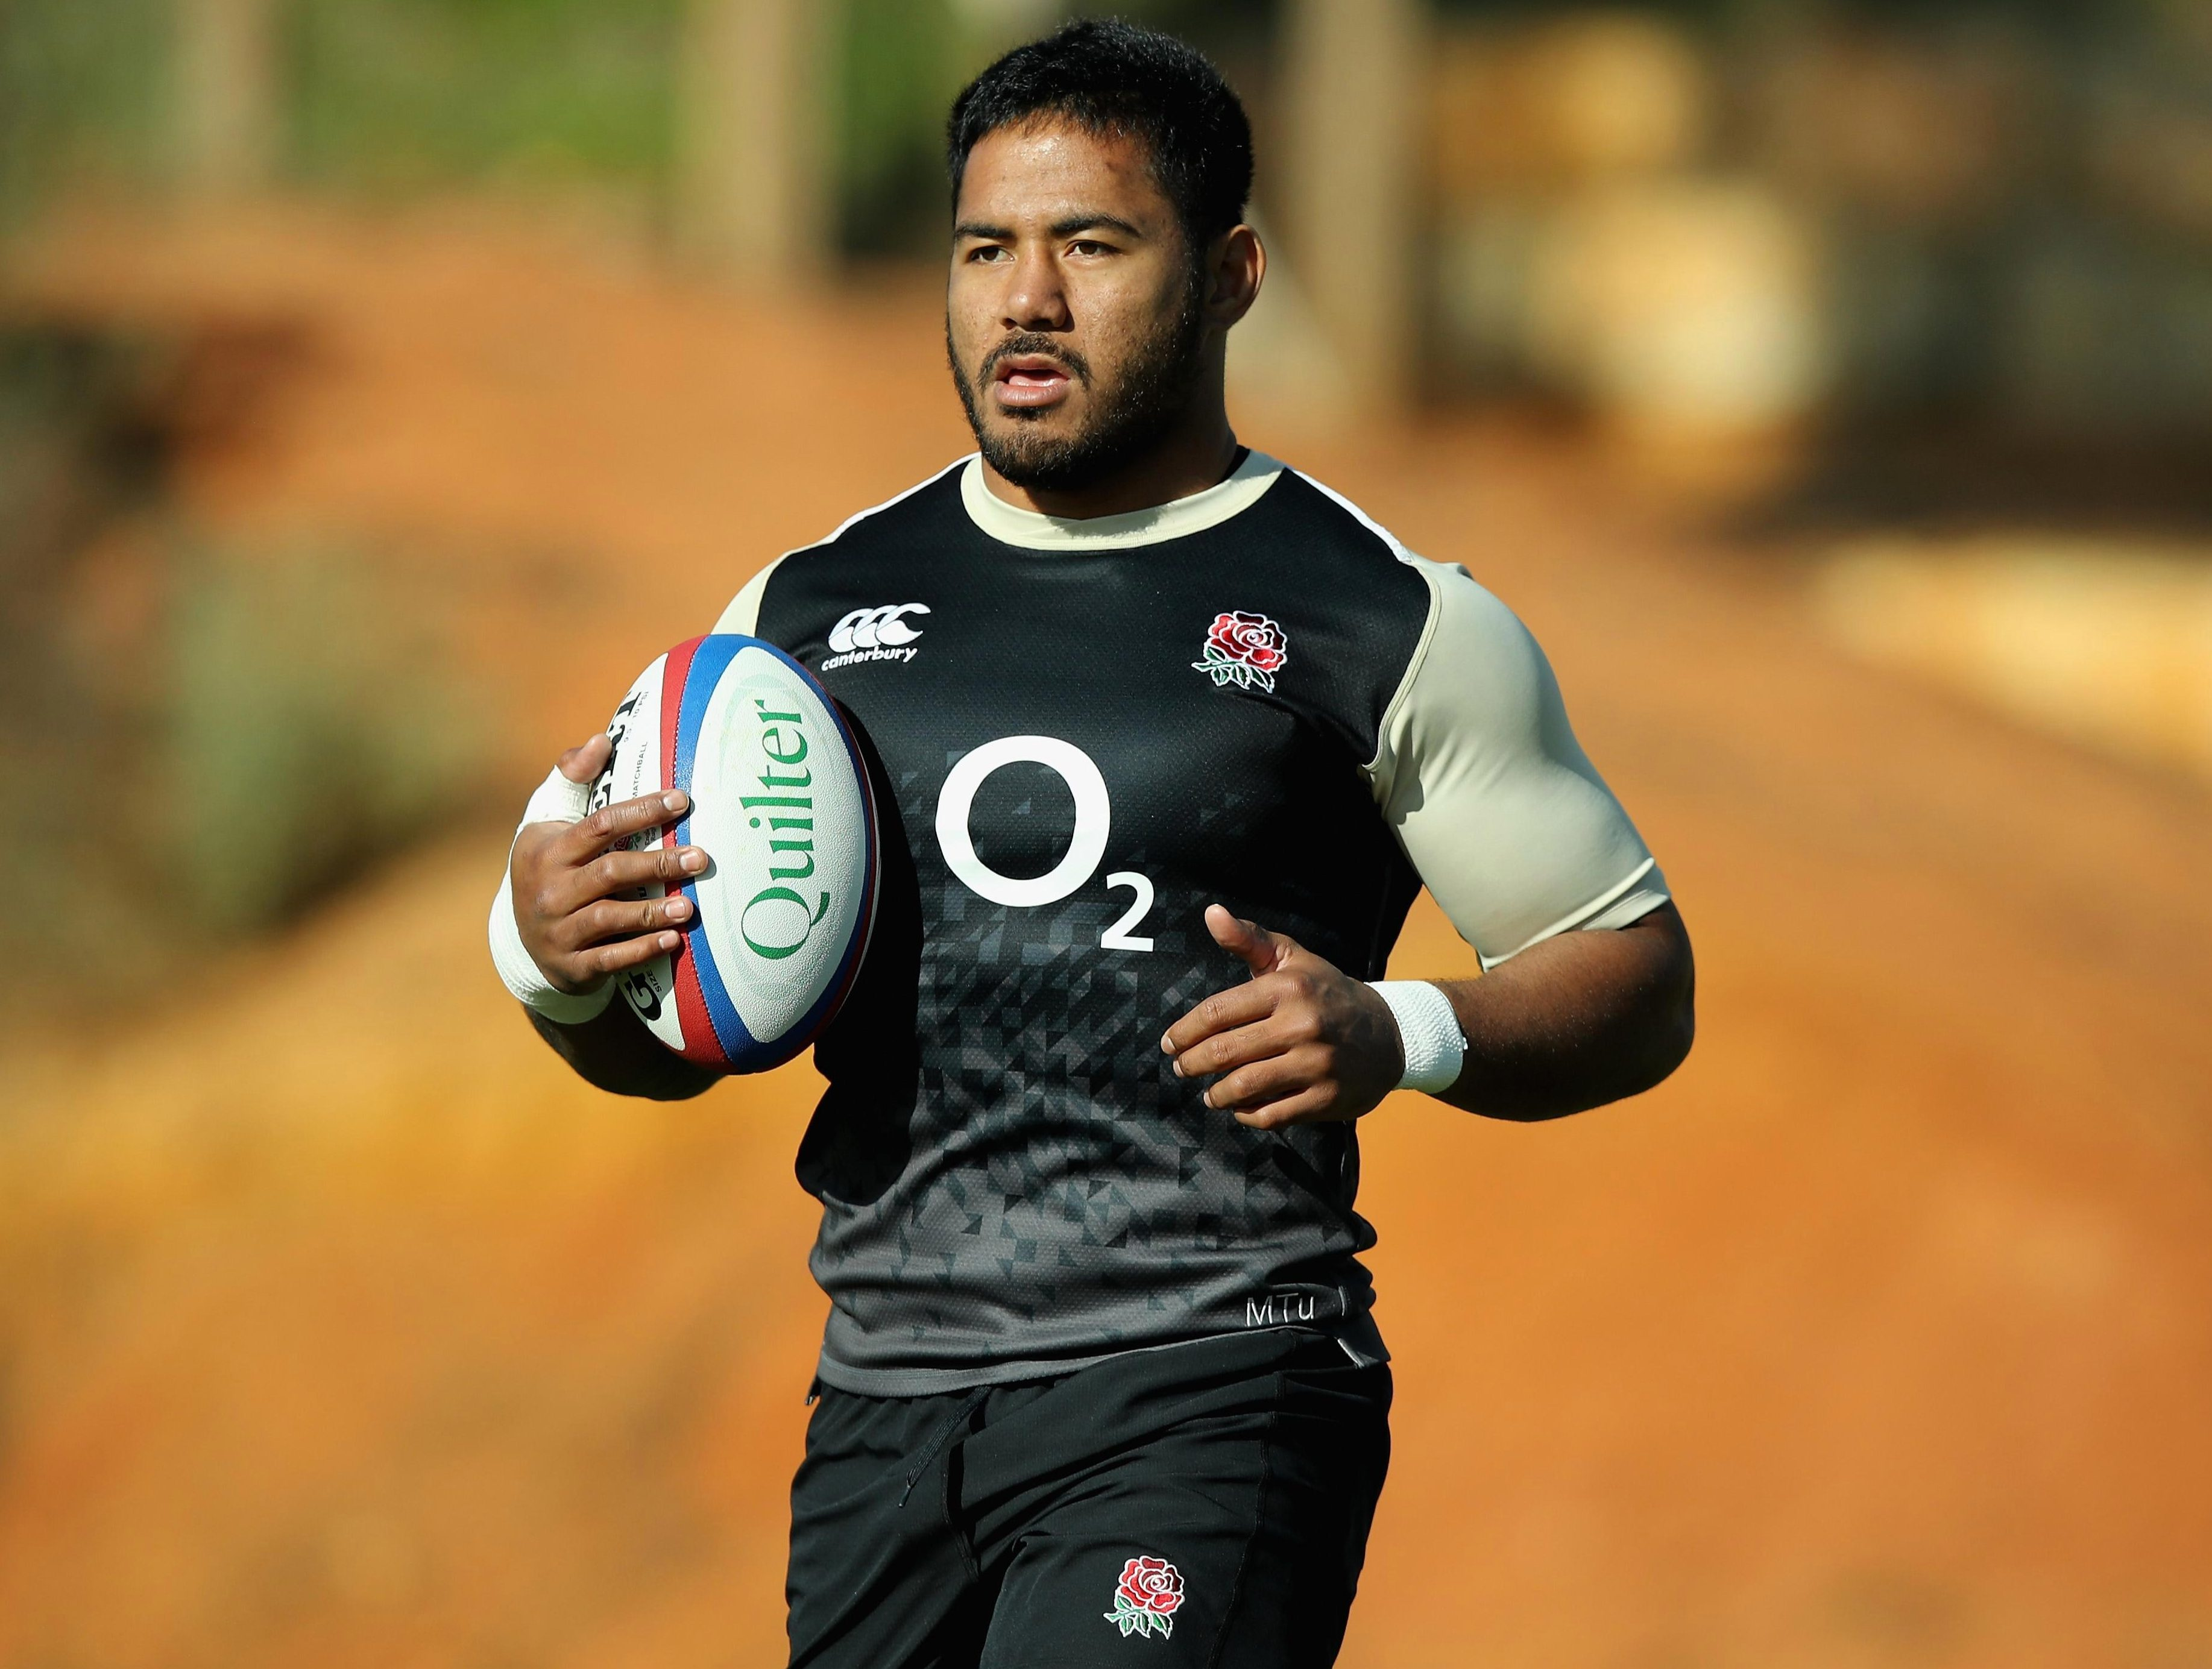 Manu Tuilagi looks to be gunning for South Africa